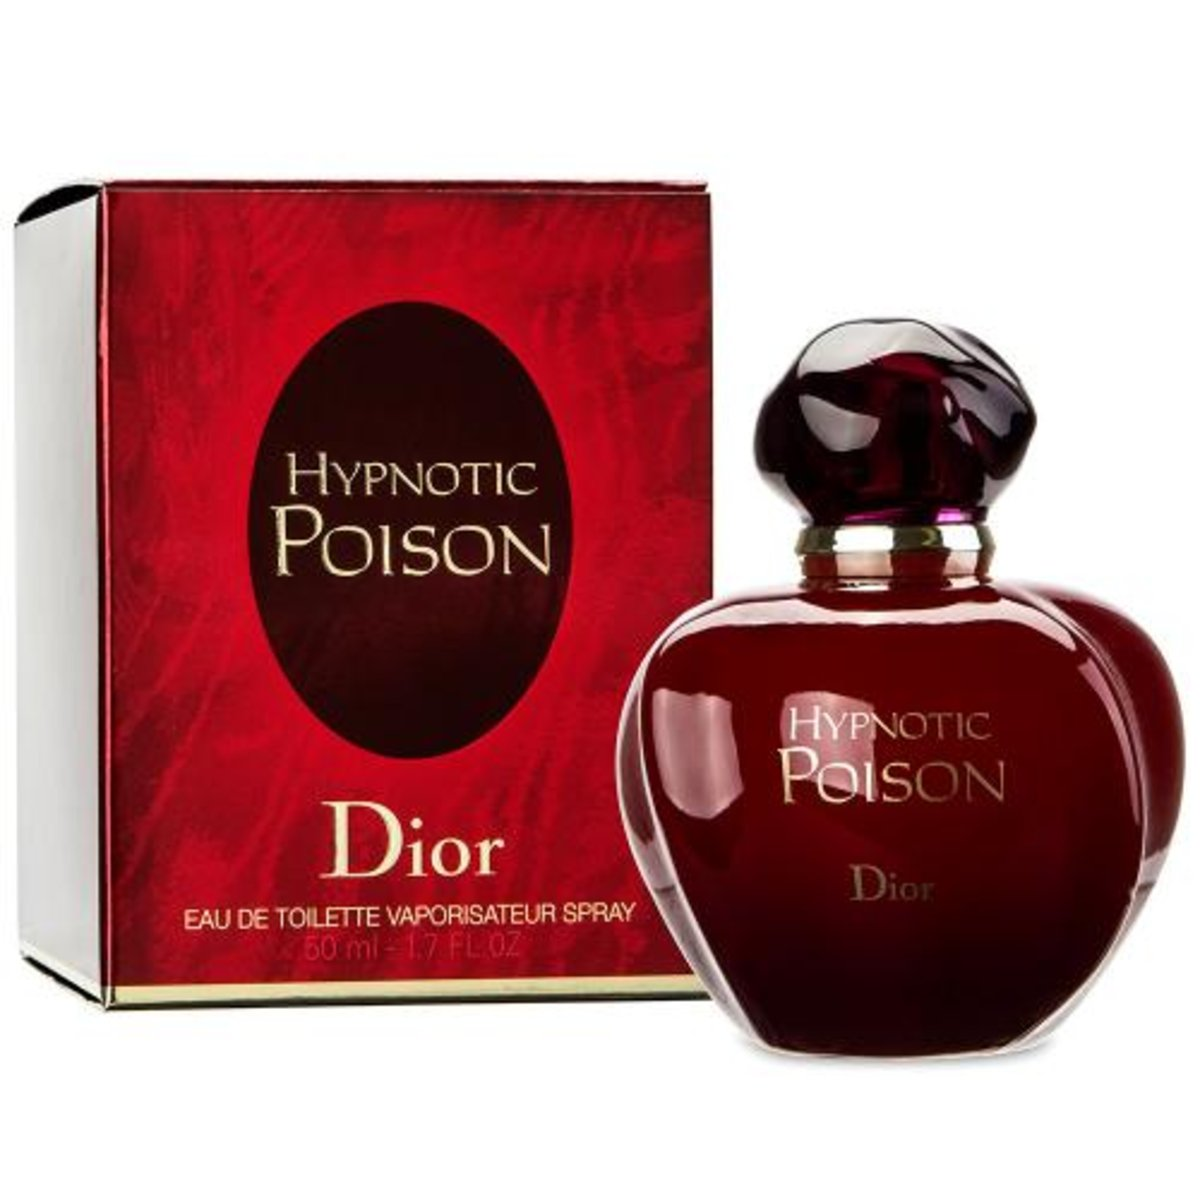 Hypnotic Posion EDT 50ml [Parallel Import]